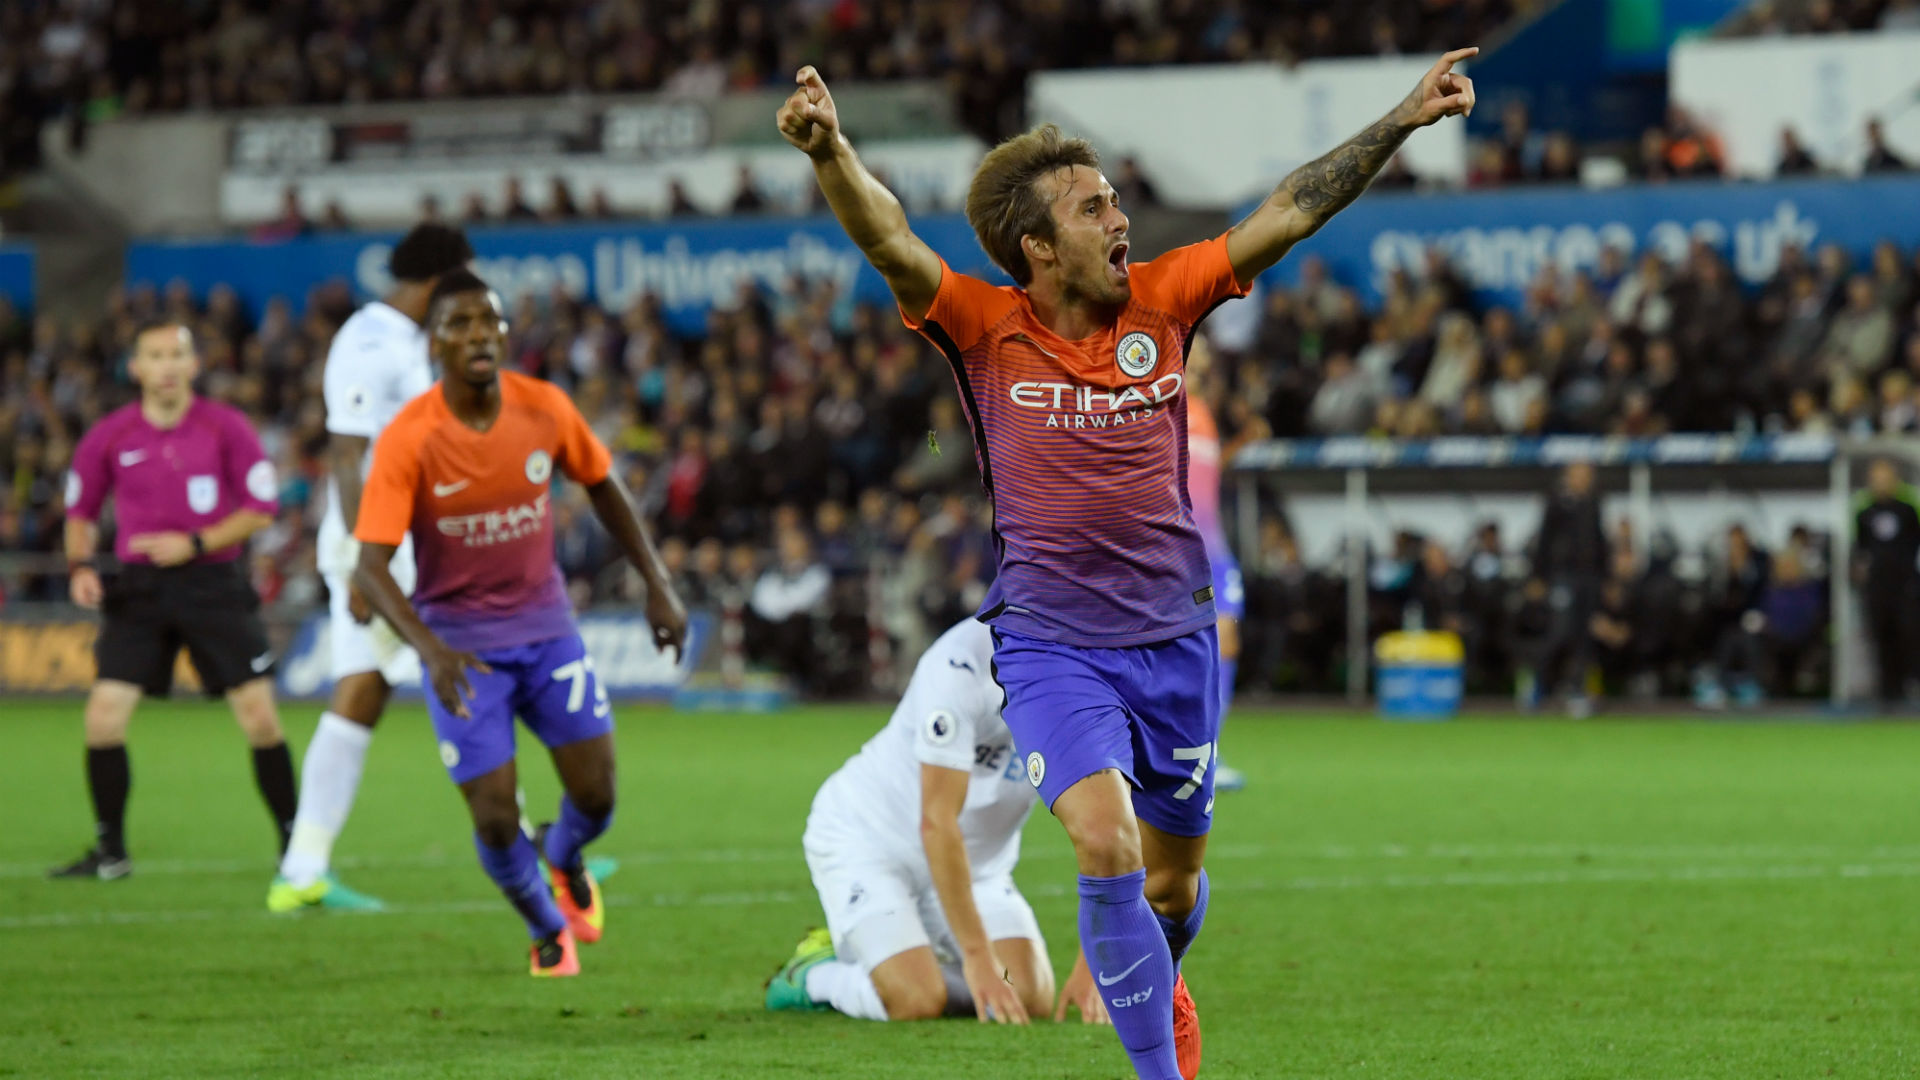 Up & Coming - Aleix Garcia opened his goal scoring account in City's 2-1 EFL win at Swansea.